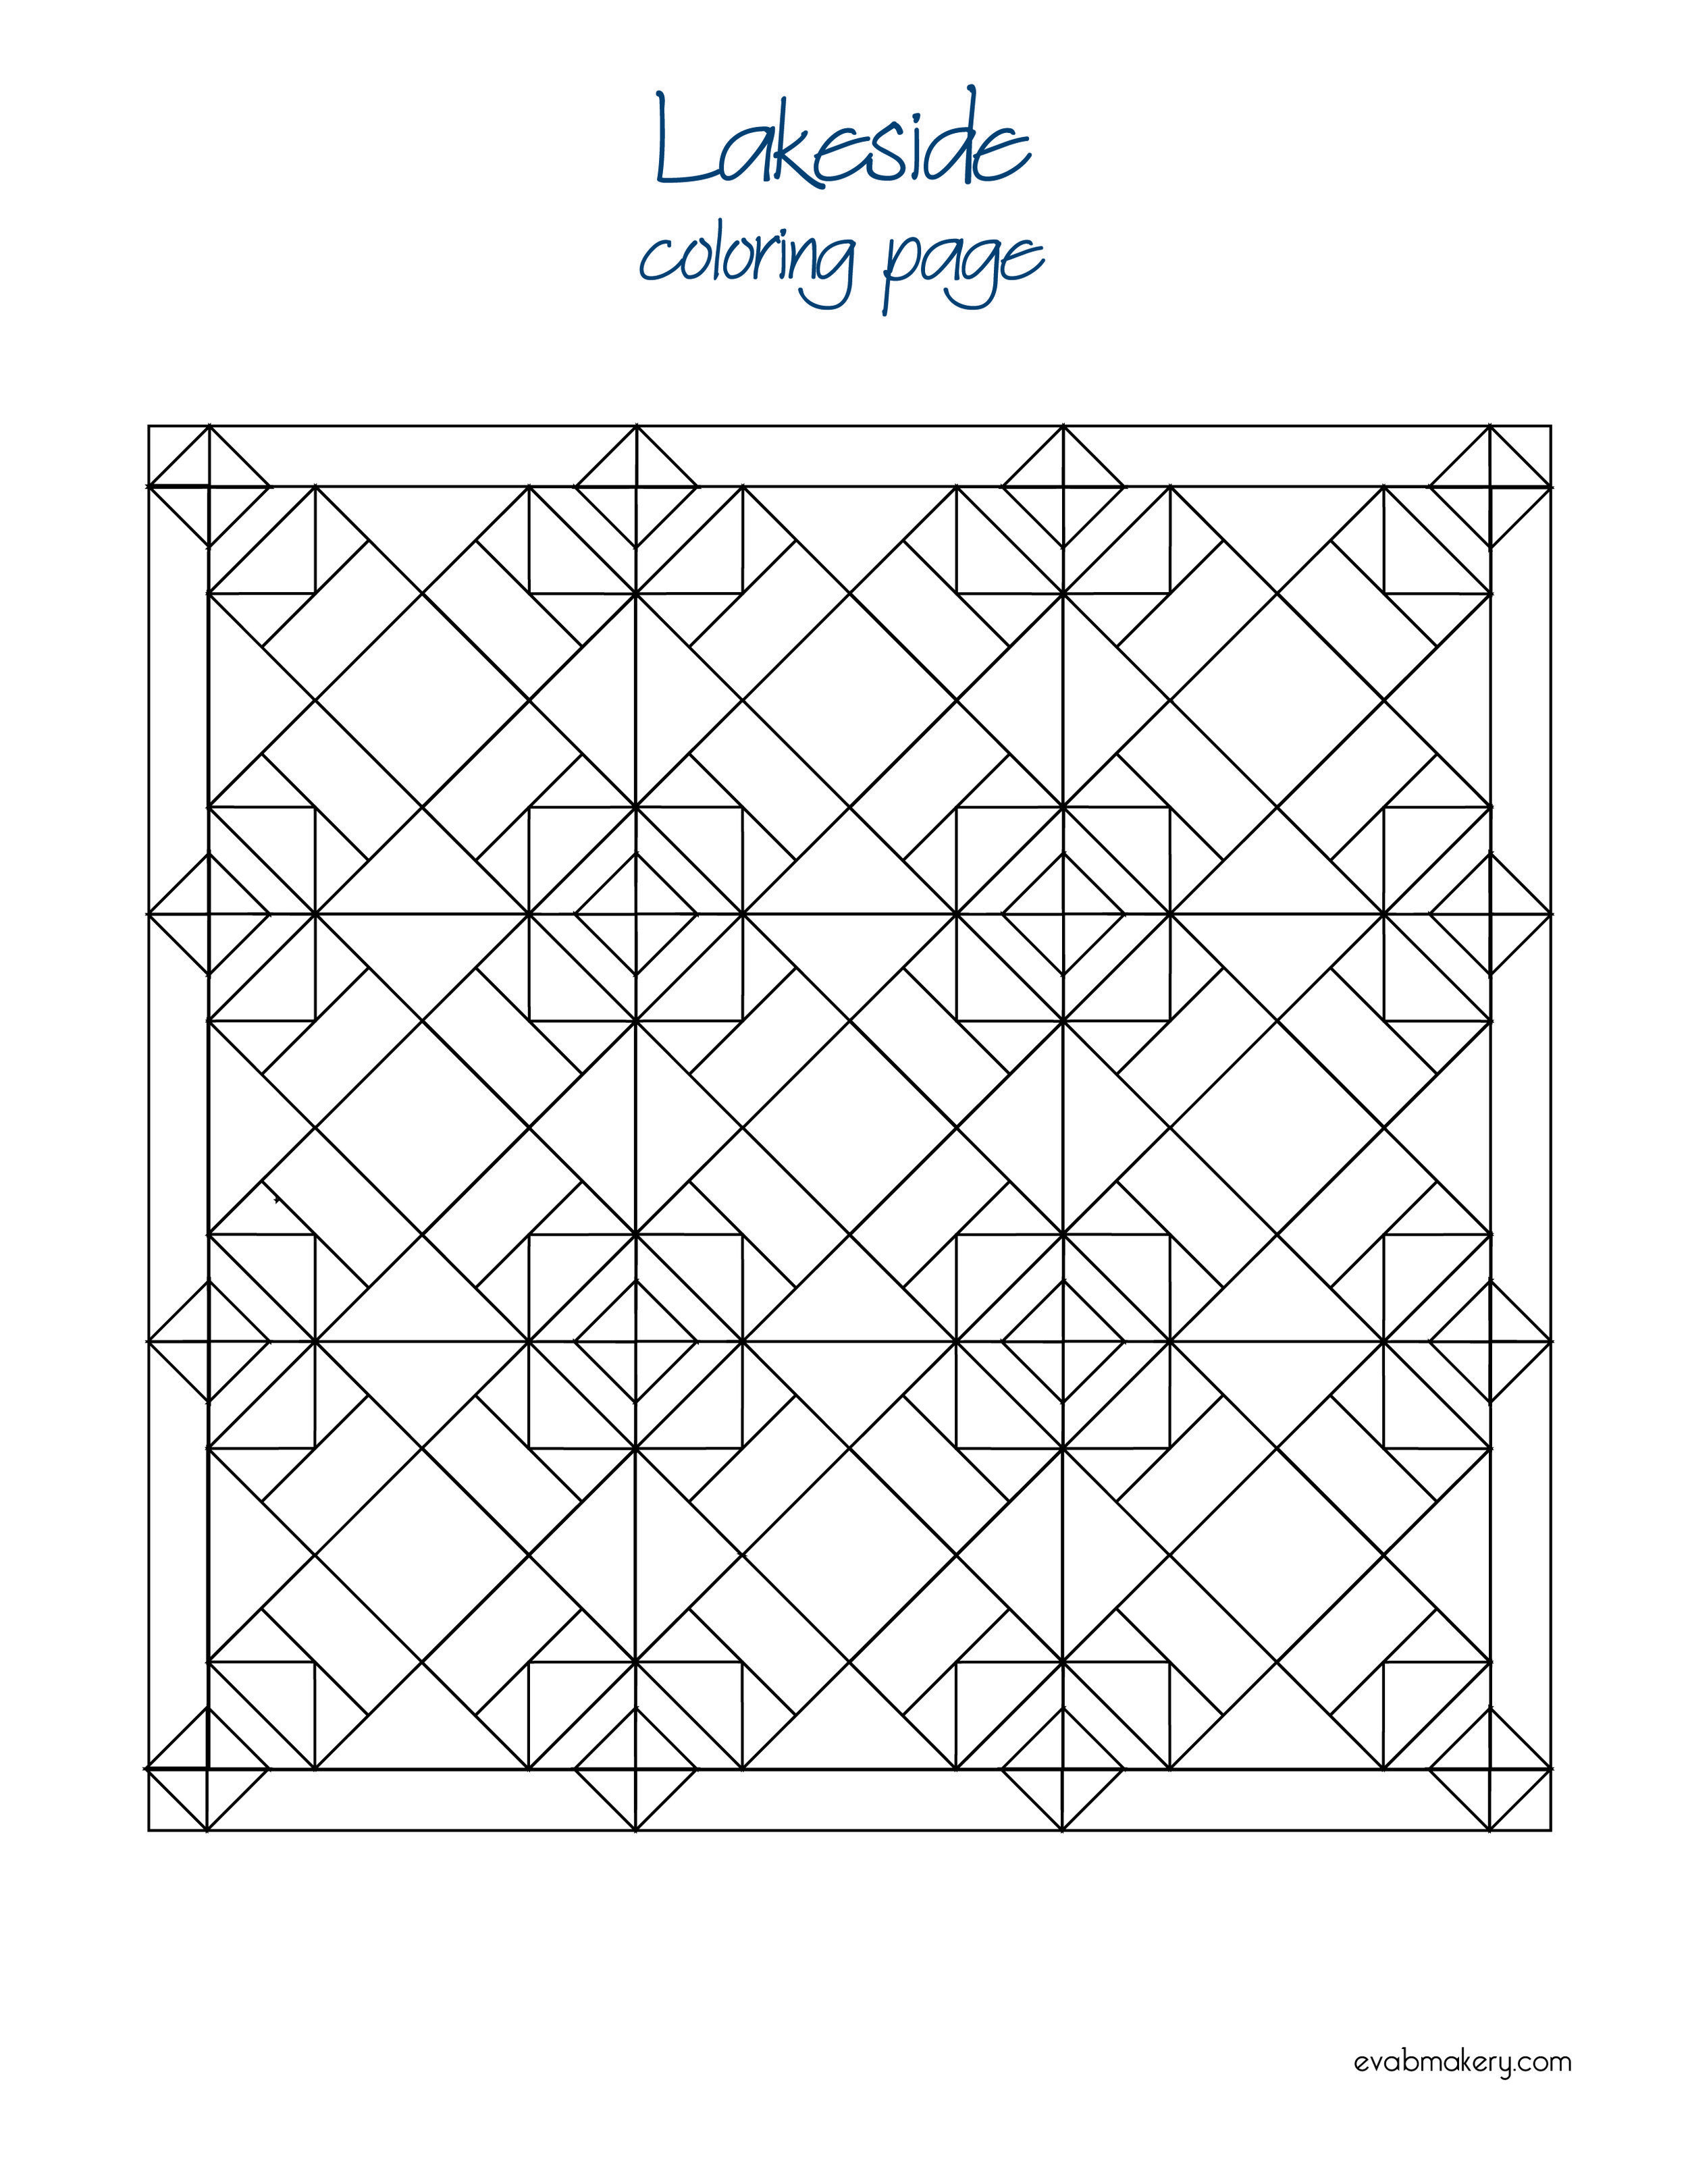 Lakeside Quilt Coloring Page Pdf Coloring Pages Quilts Color